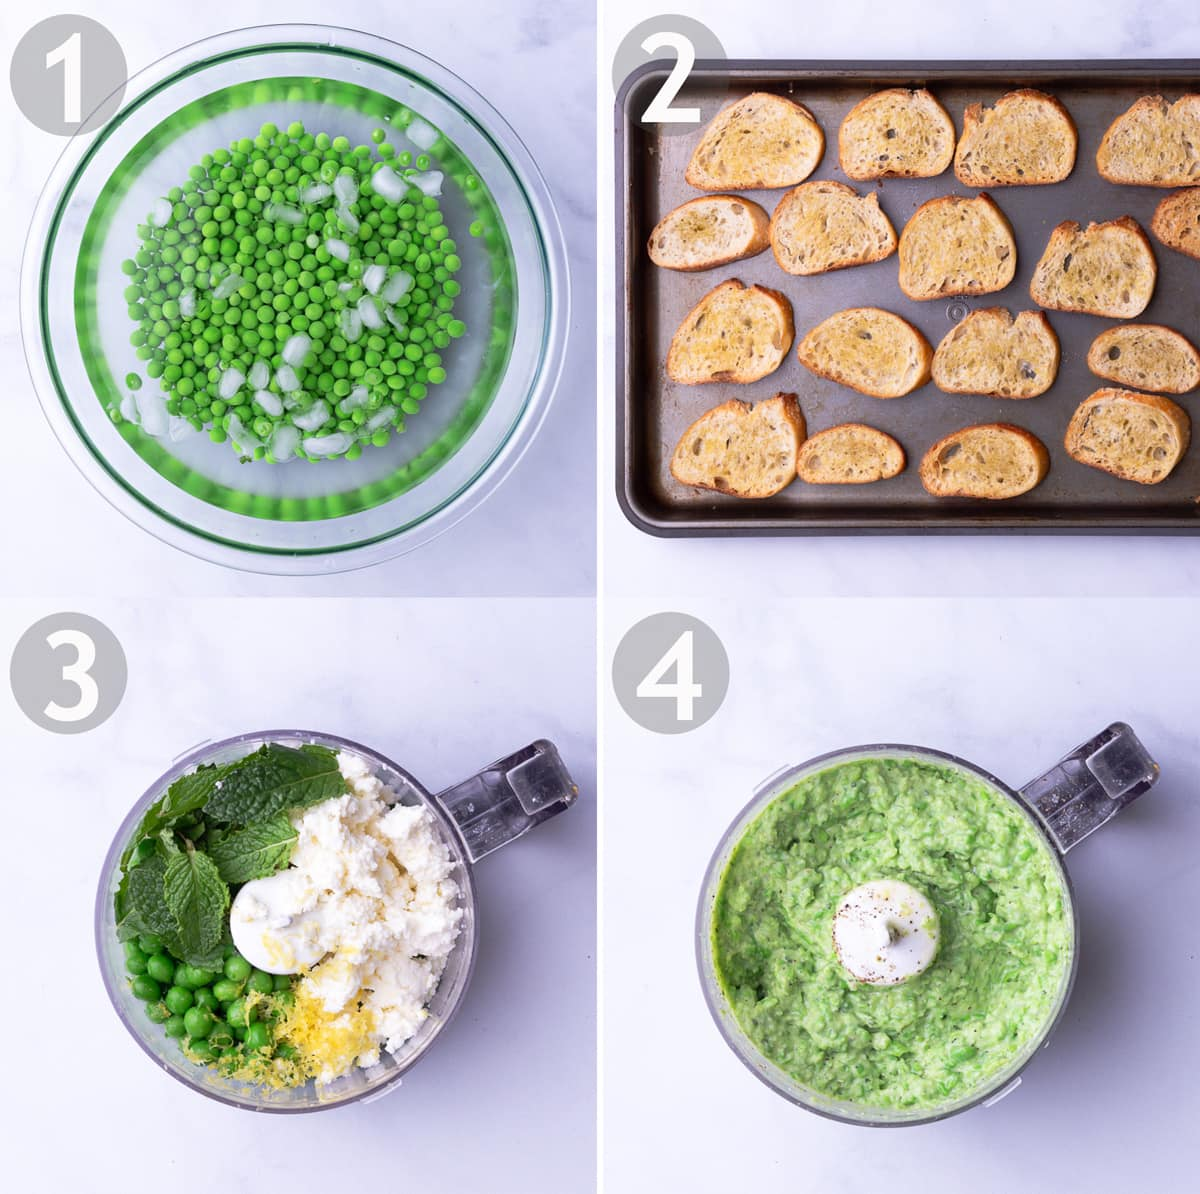 Steps to make crostini including shucking, blanching and shocking peas, toasting the bread and mixing the ricotta spread in a food processor.